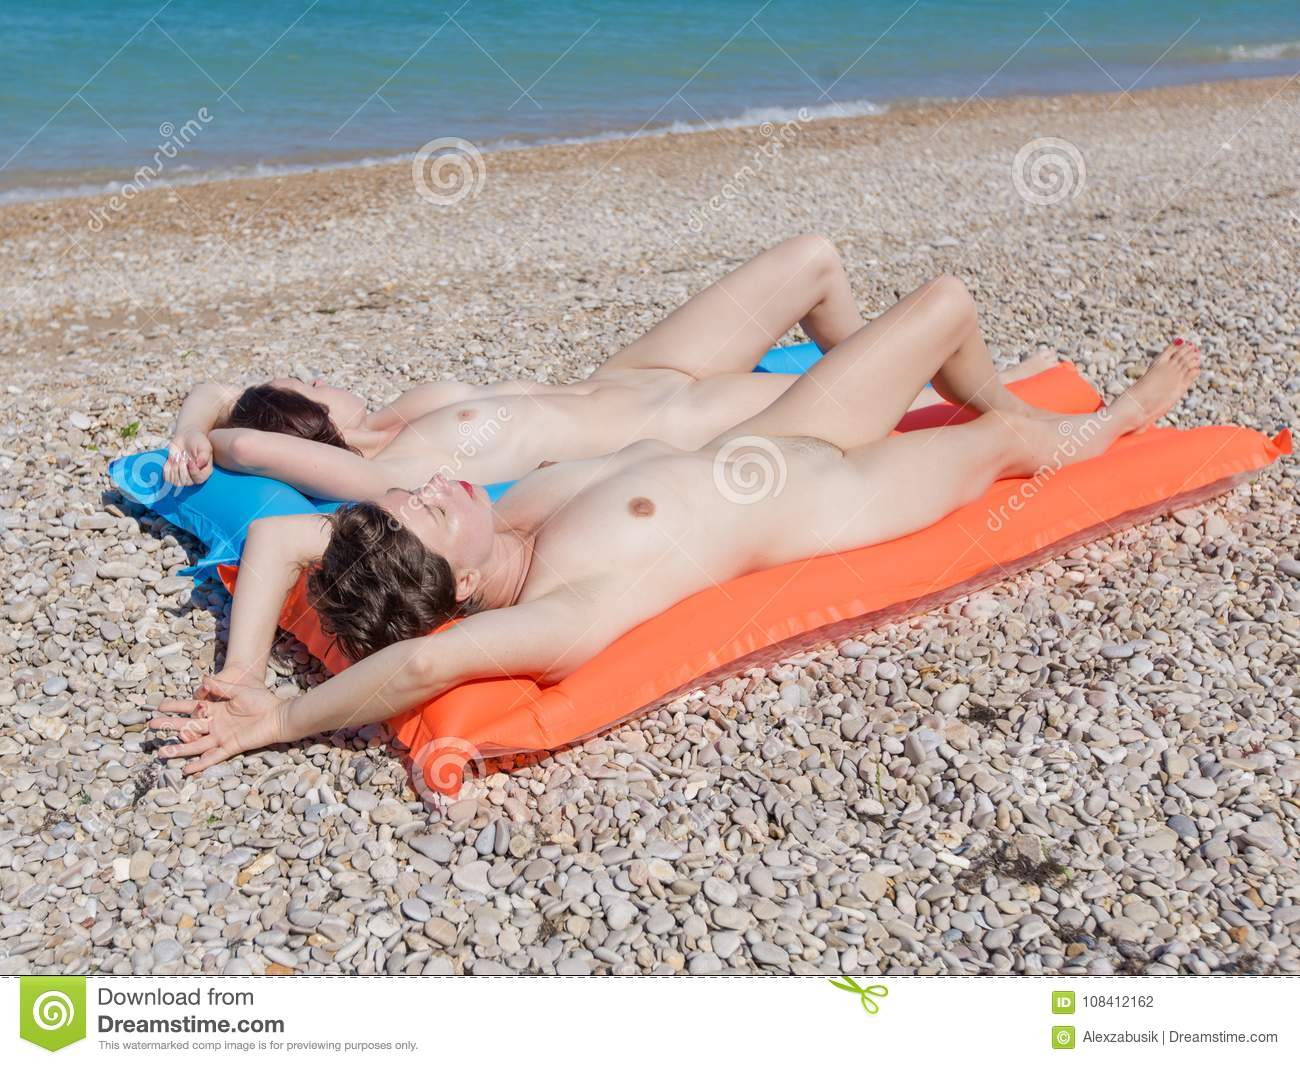 Naked sunbathing pictures